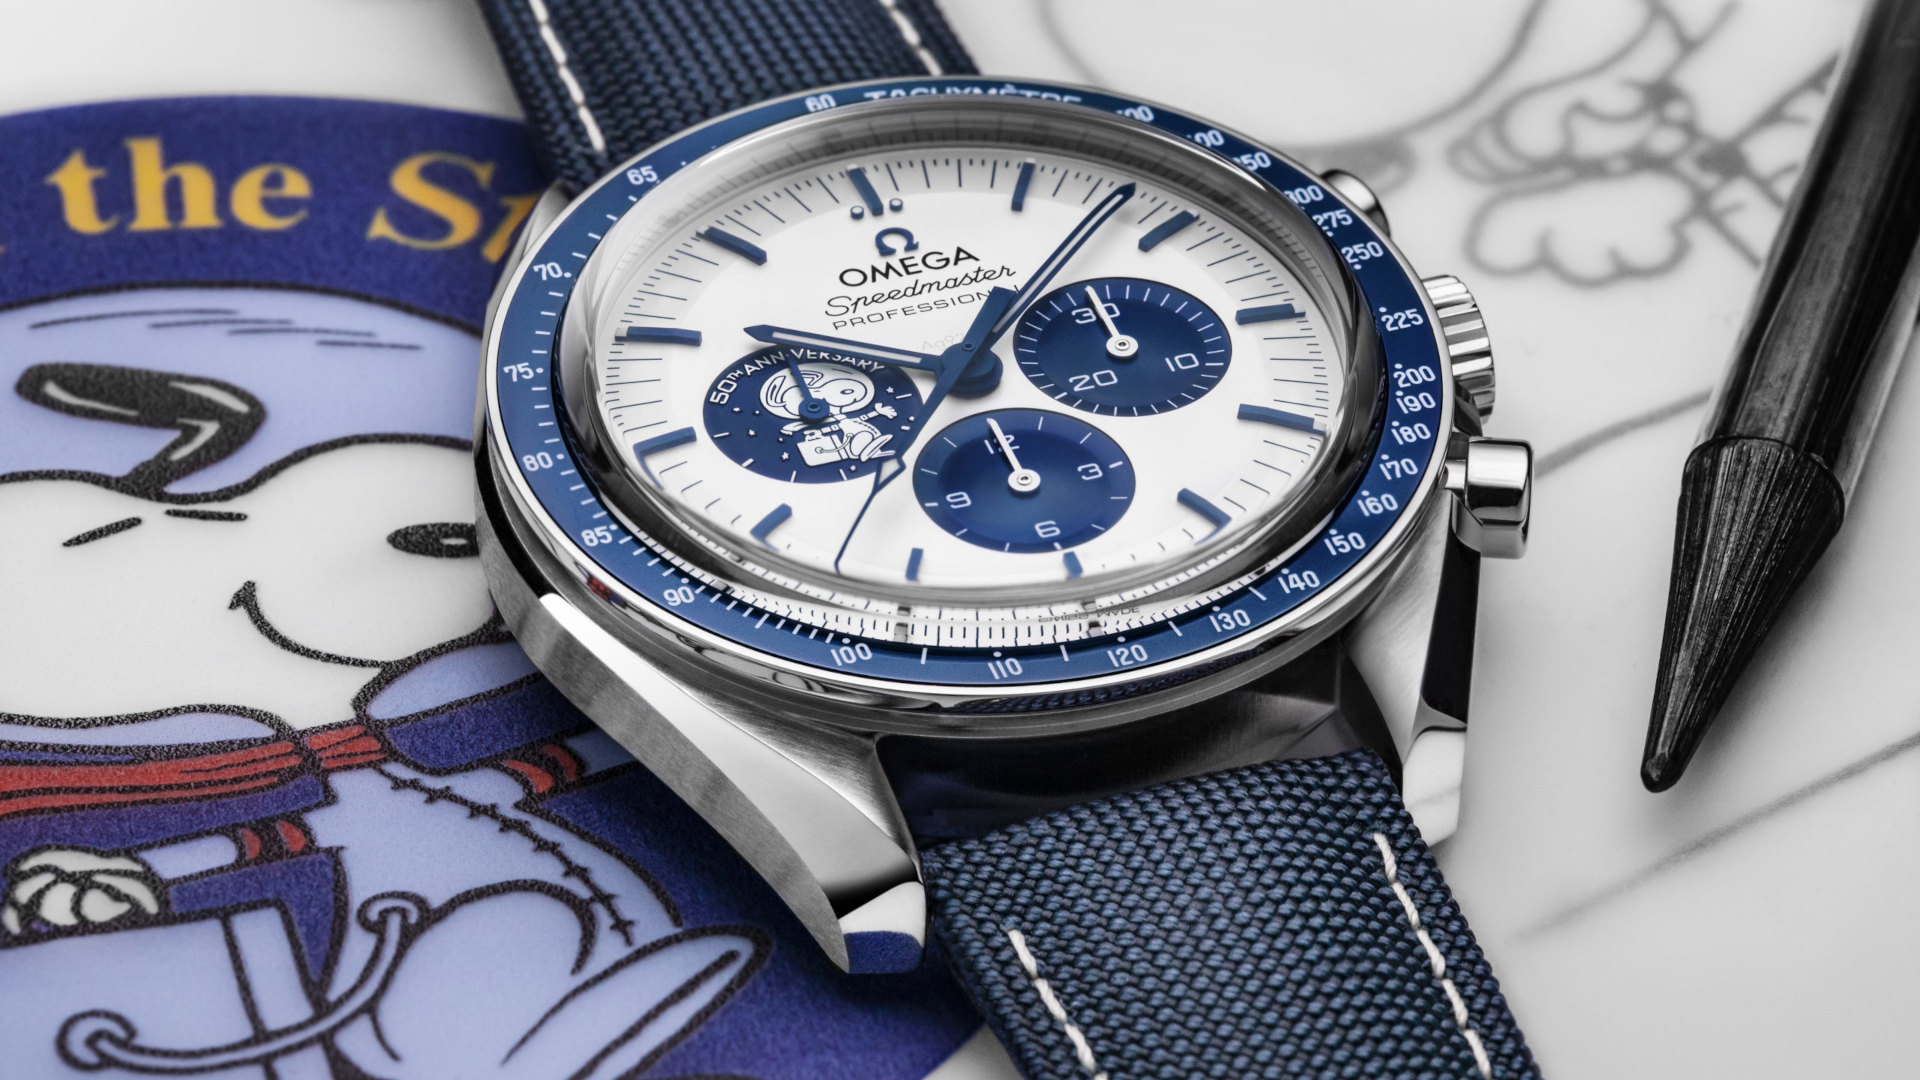 Omega Celebrates 50 Years Since Their Silver Snoopy Award With A Fantastic Speedmaster Tribute